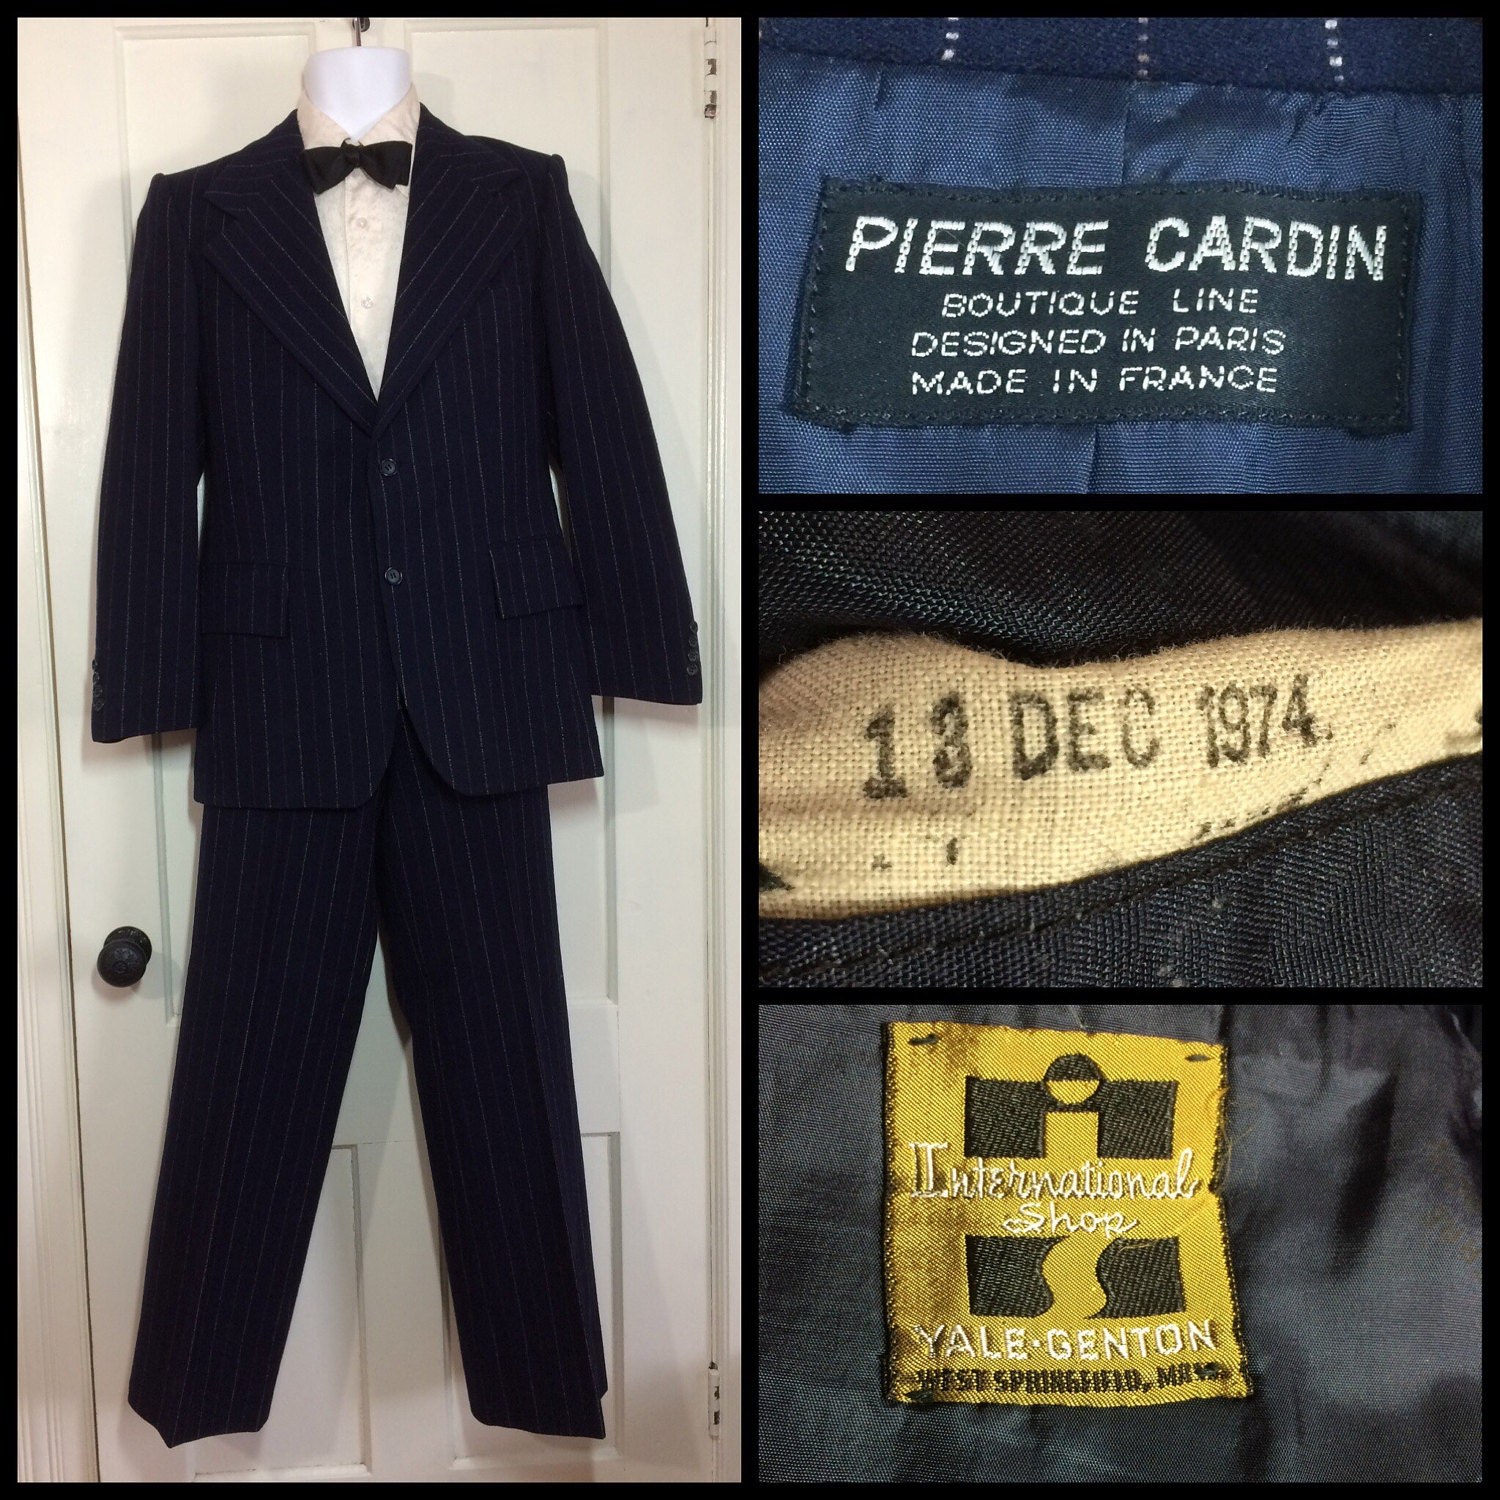 1970s designer pierre cardin boutique paris made in france 1974 2 piece blue pinstripe tailored. Black Bedroom Furniture Sets. Home Design Ideas